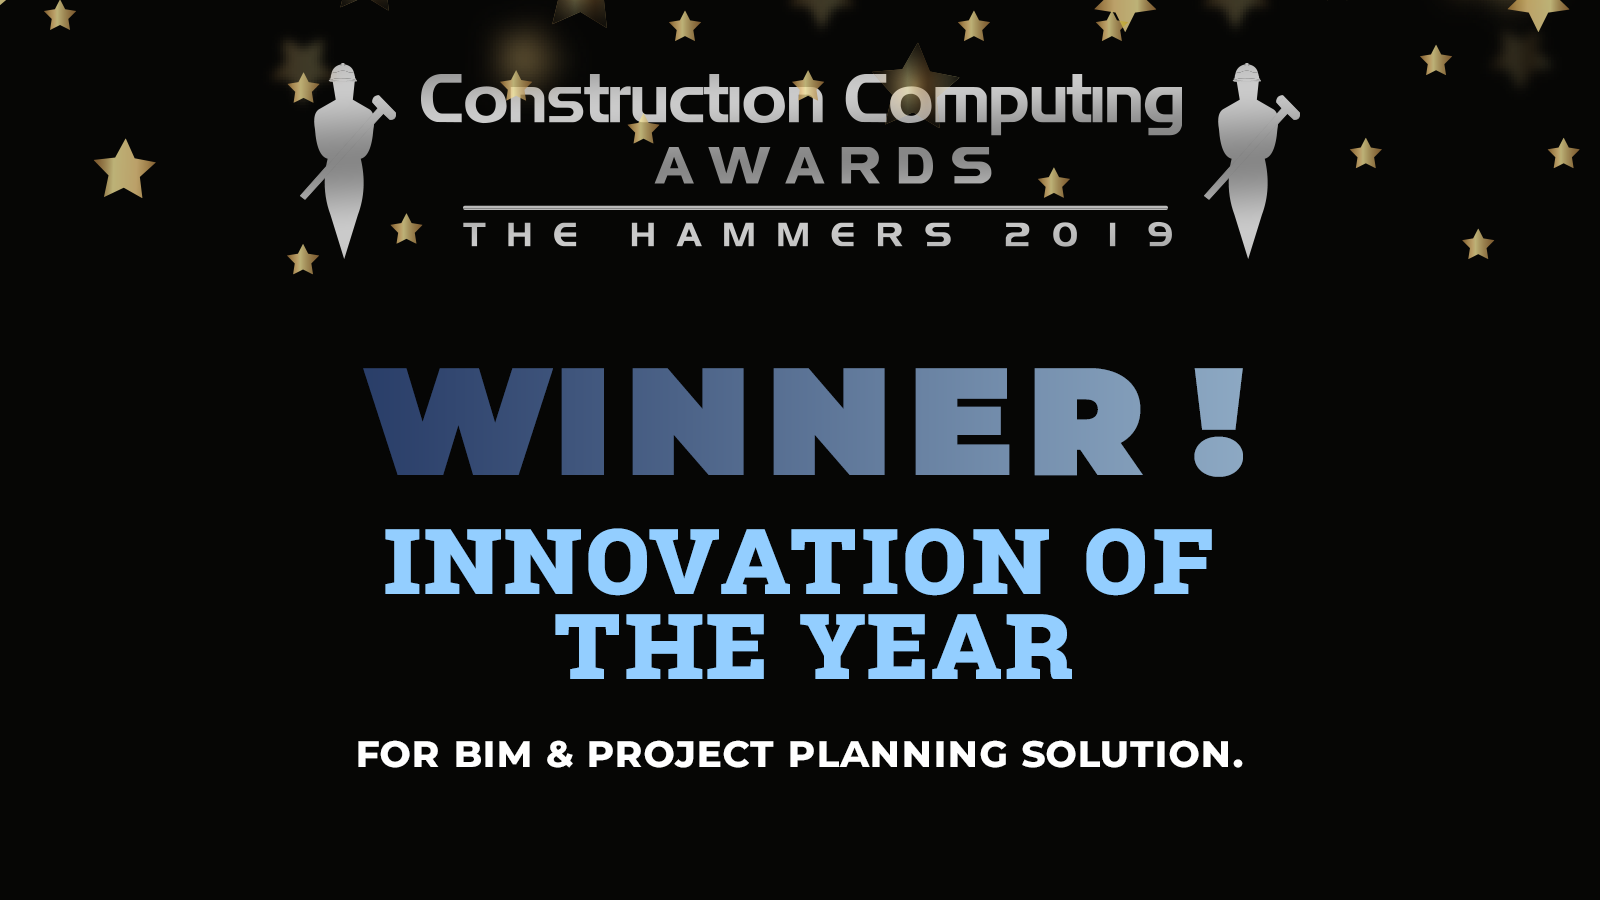 winner of innovation of the year at construction computing awards